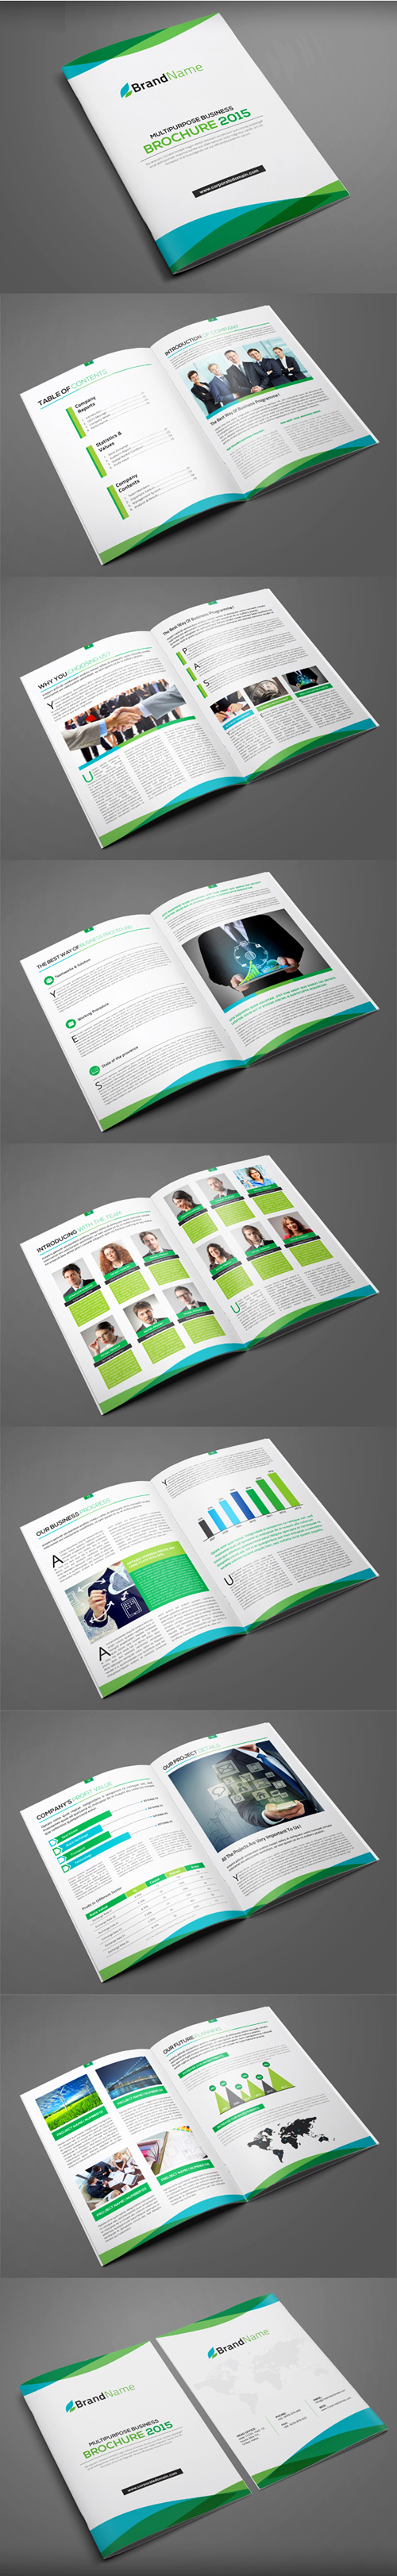 Multipurpose Brochure Design